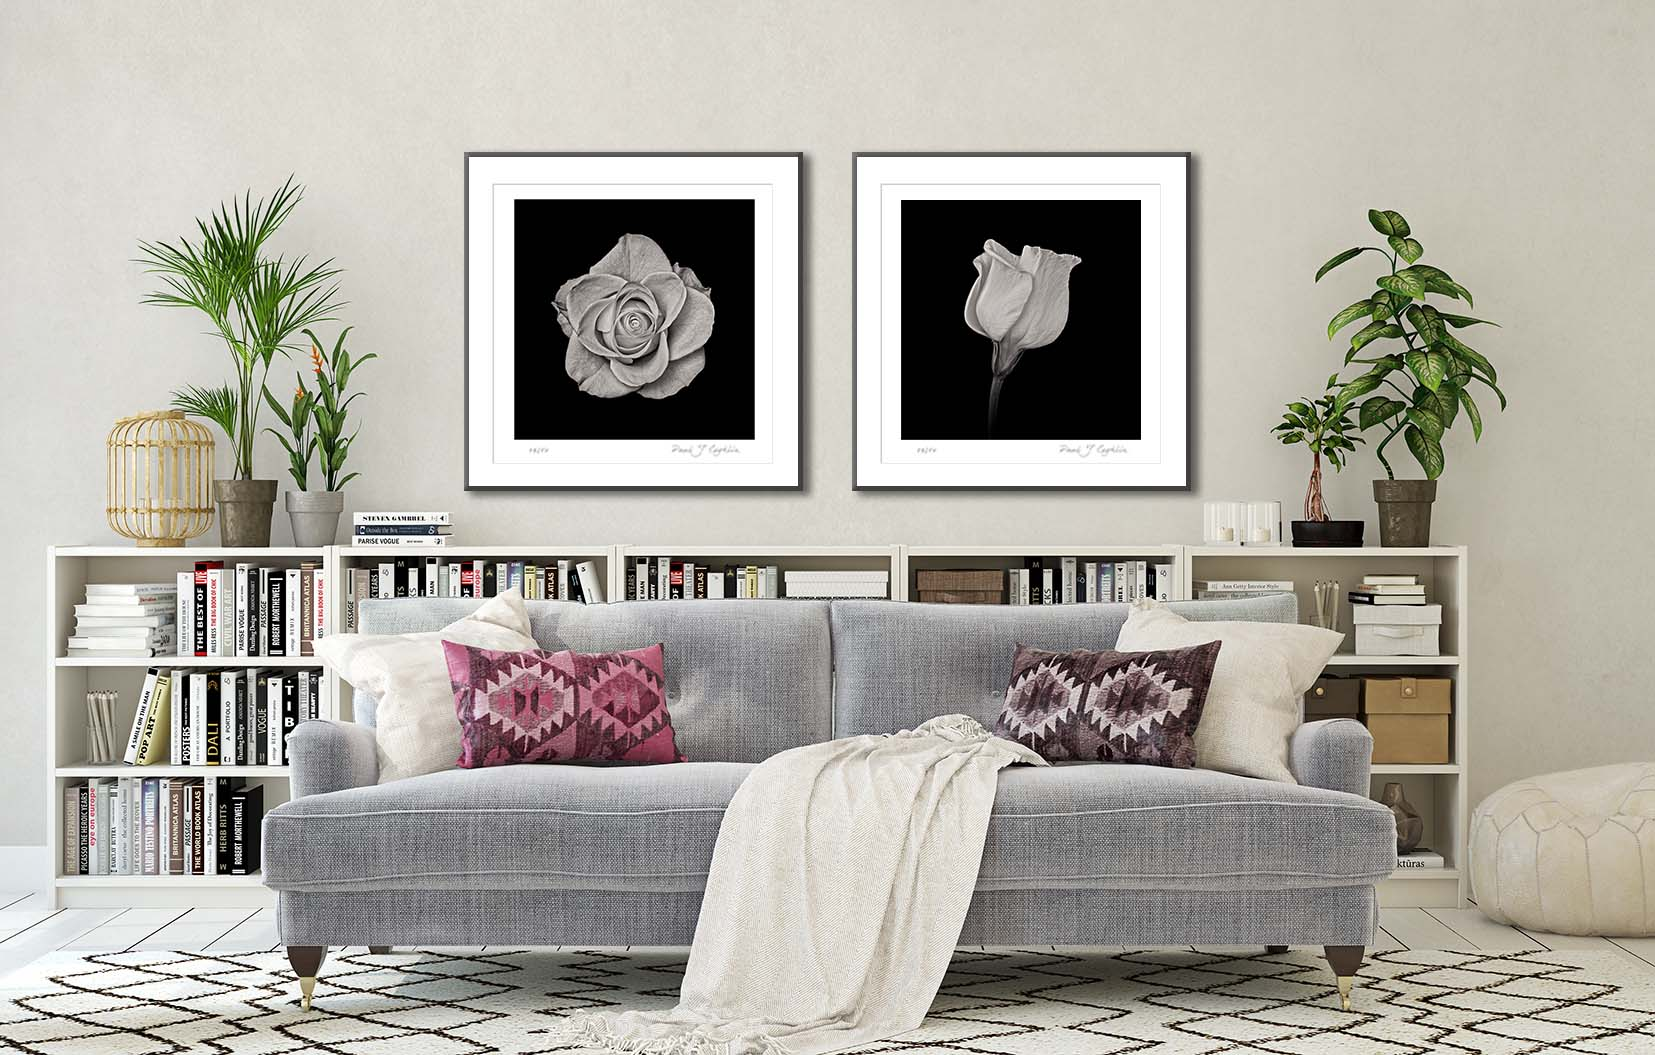 Two black and white floral prints, one of a rose and one of a campanula. Botanical studies by Paul Coghlin FBIPP